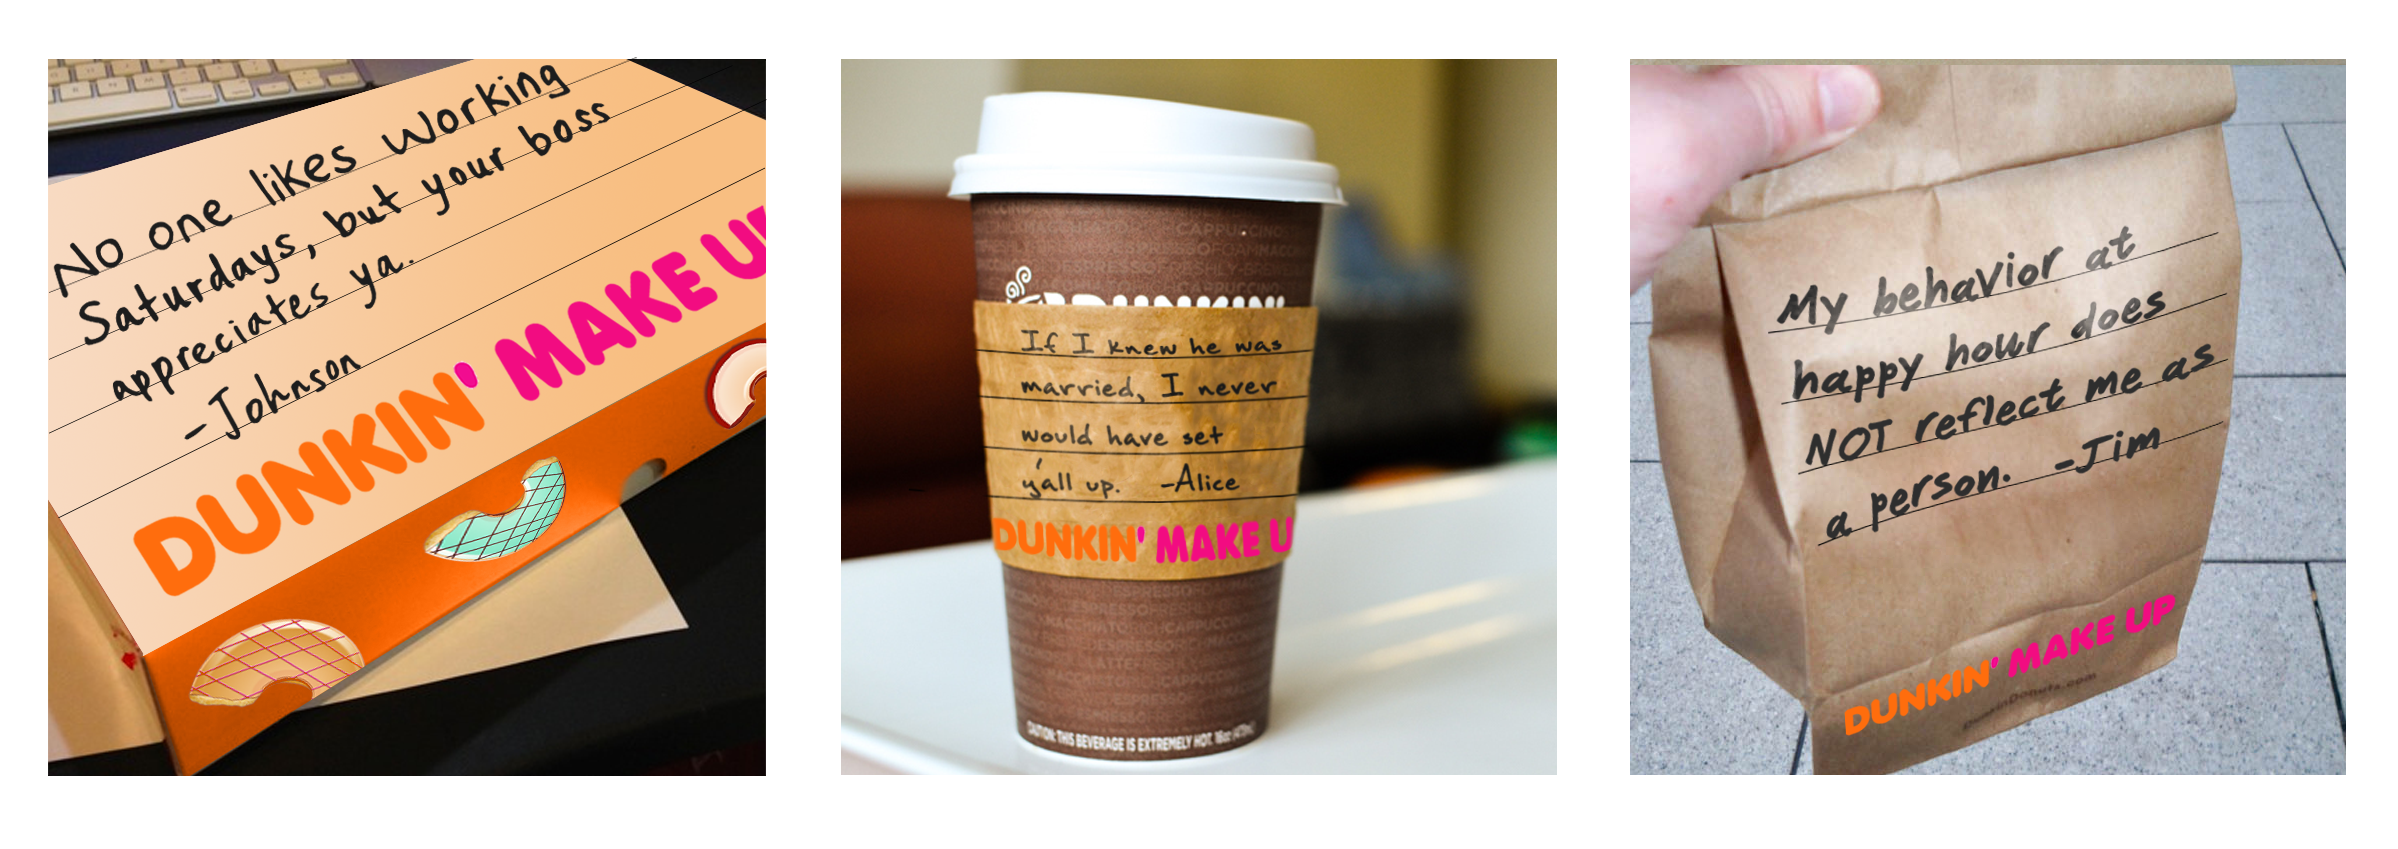 Fill-in-the blank packaging lets customers share their #DunkinMakeUp stories across social media.